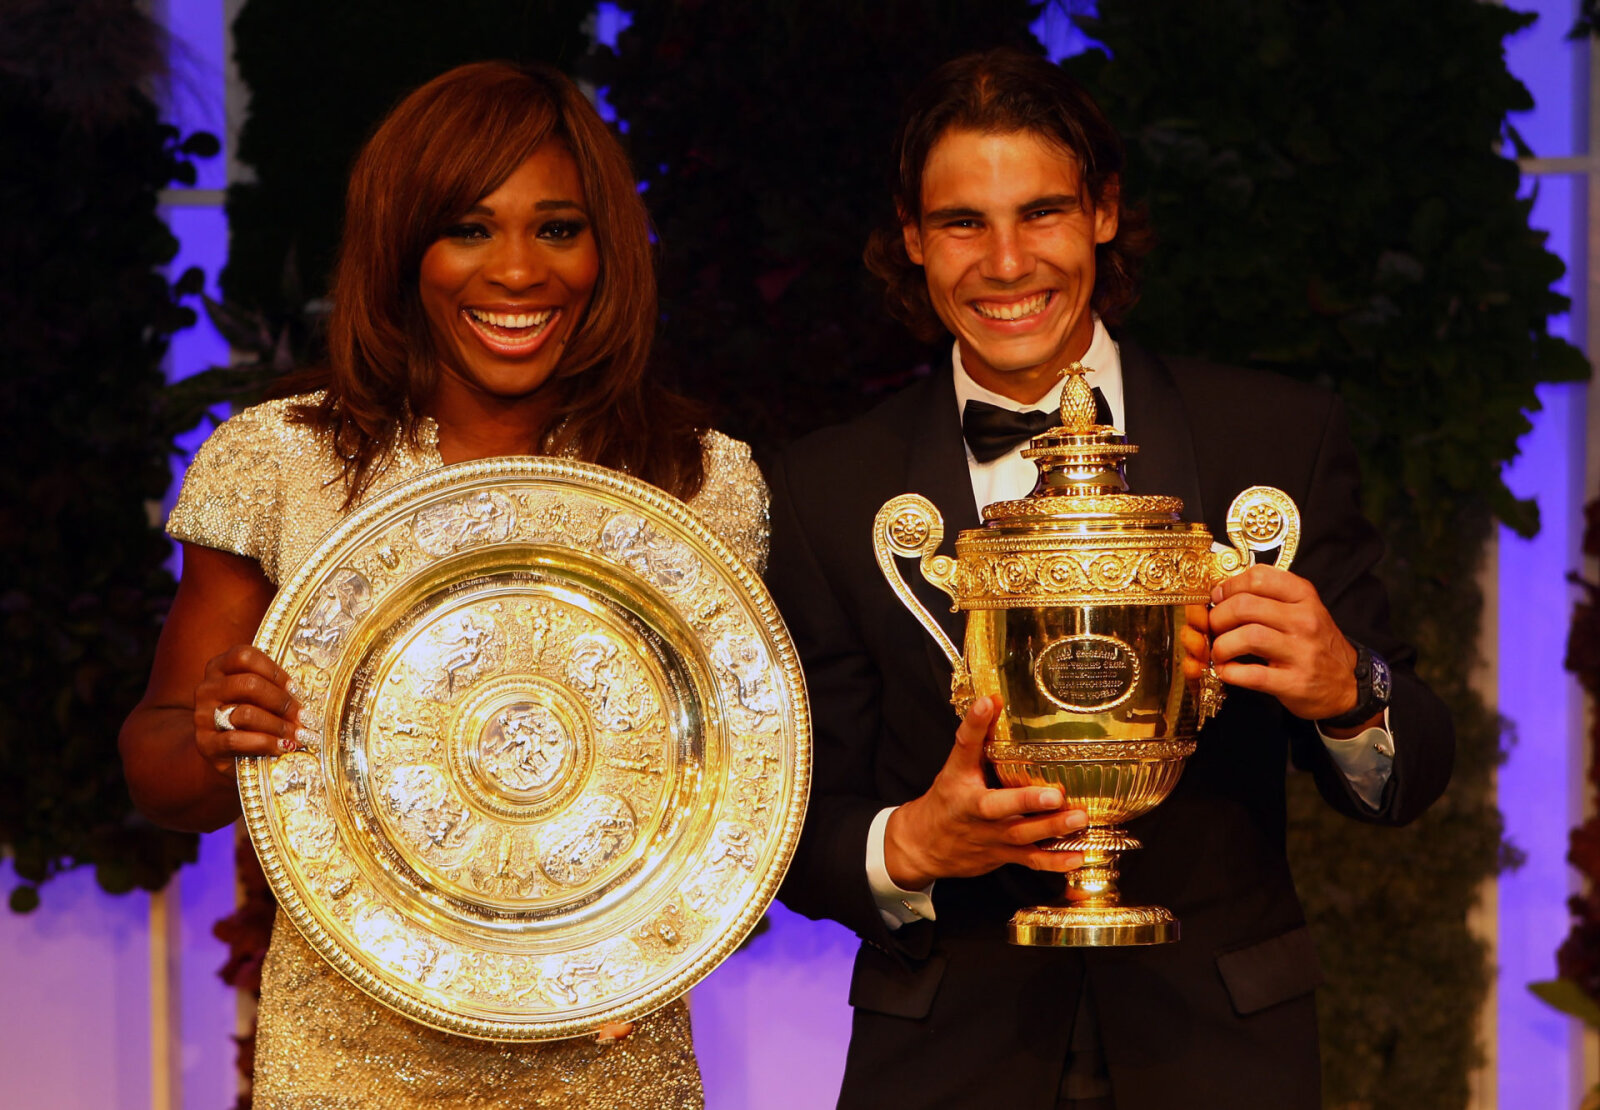 Wimbledon Championships 2021: Complete Breakdown of the Prize Money From Winner to Last-Place